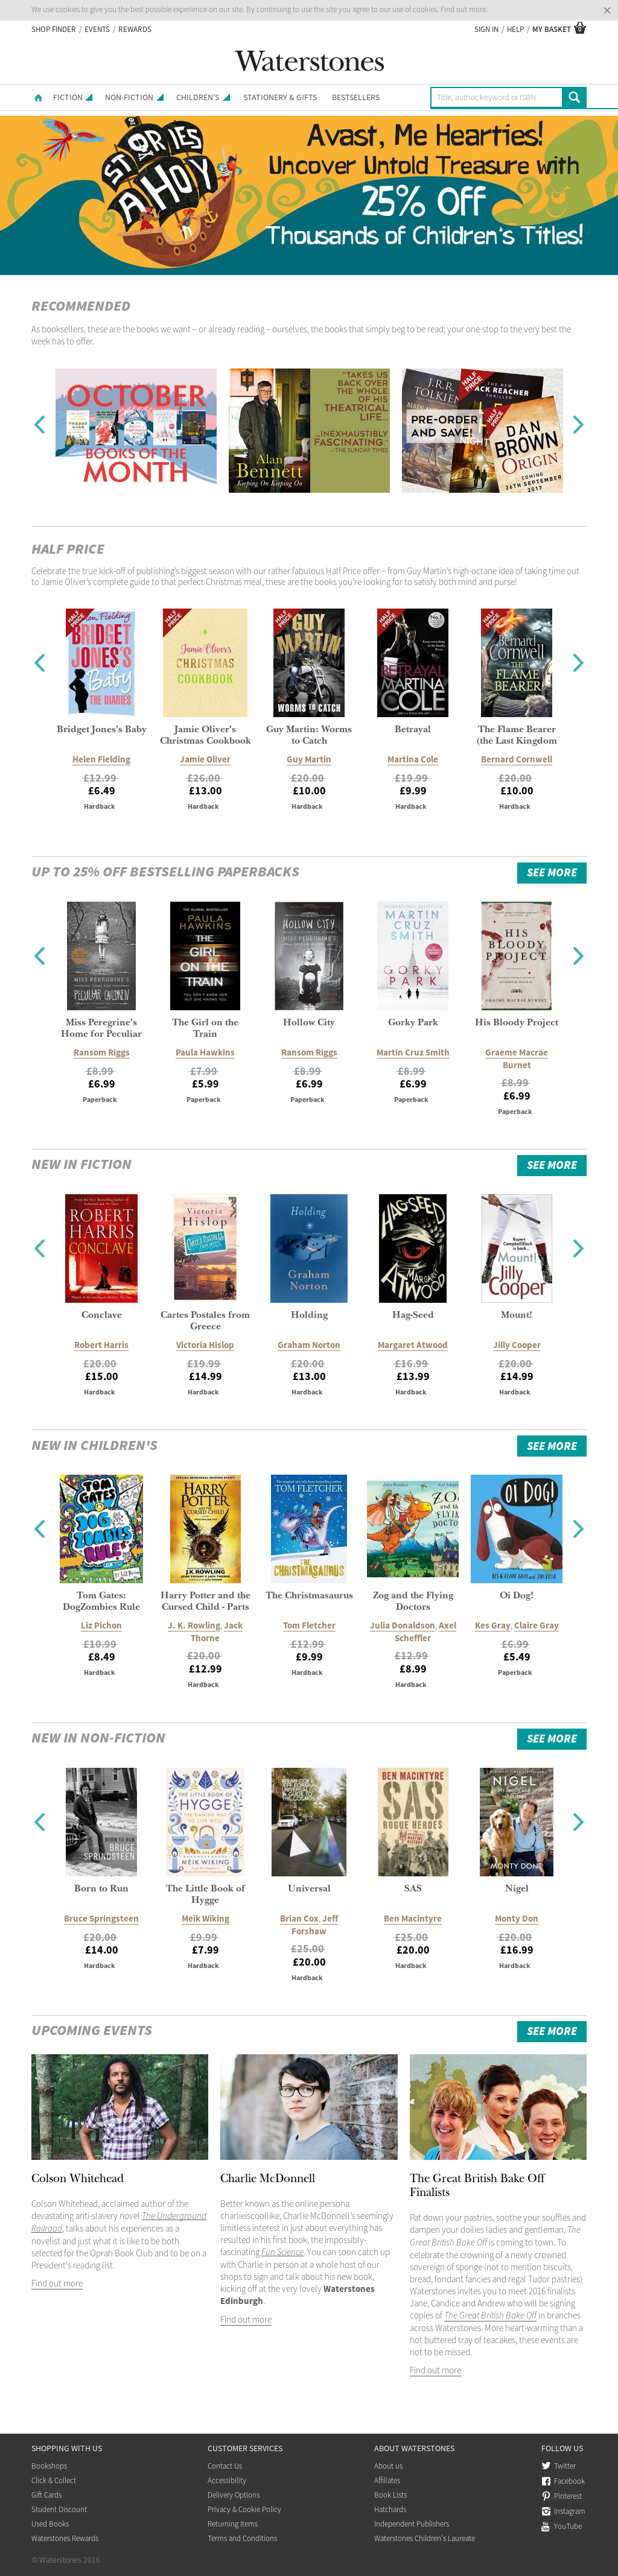 Waterstones Competitors, Revenue and Employees - Owler